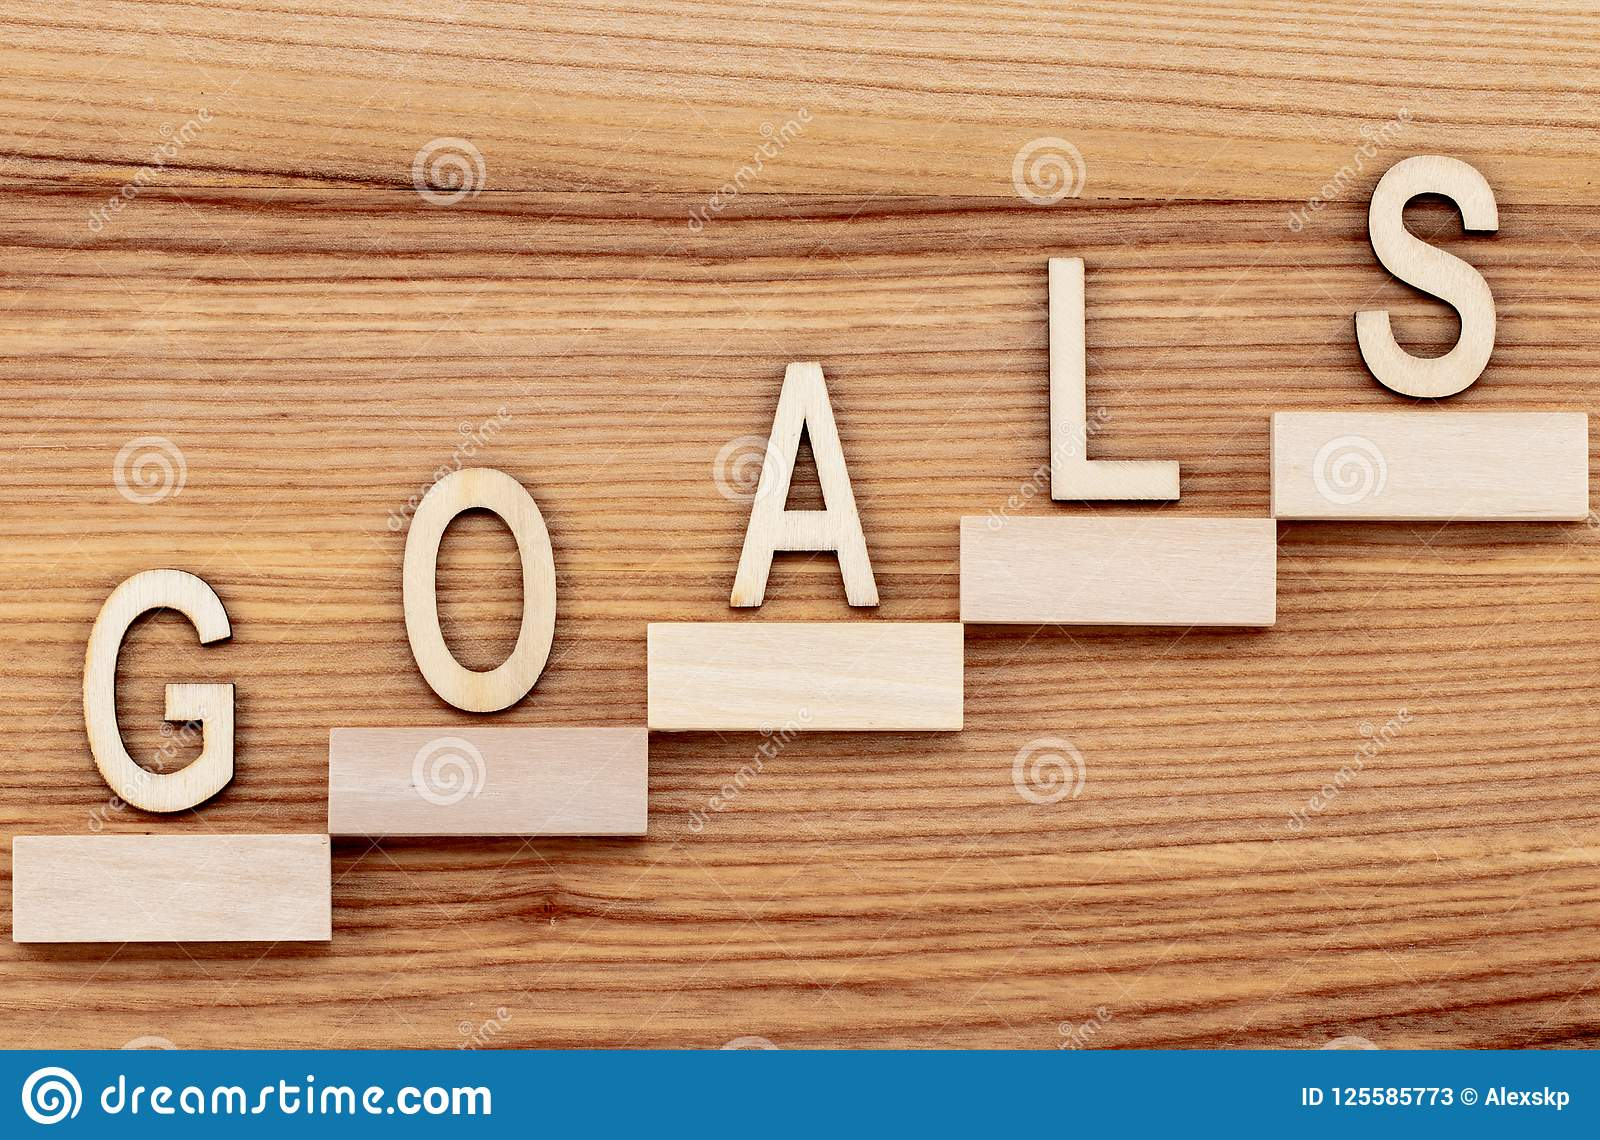 Goals Concept With Ladder Of Success On Wooden Table Stock